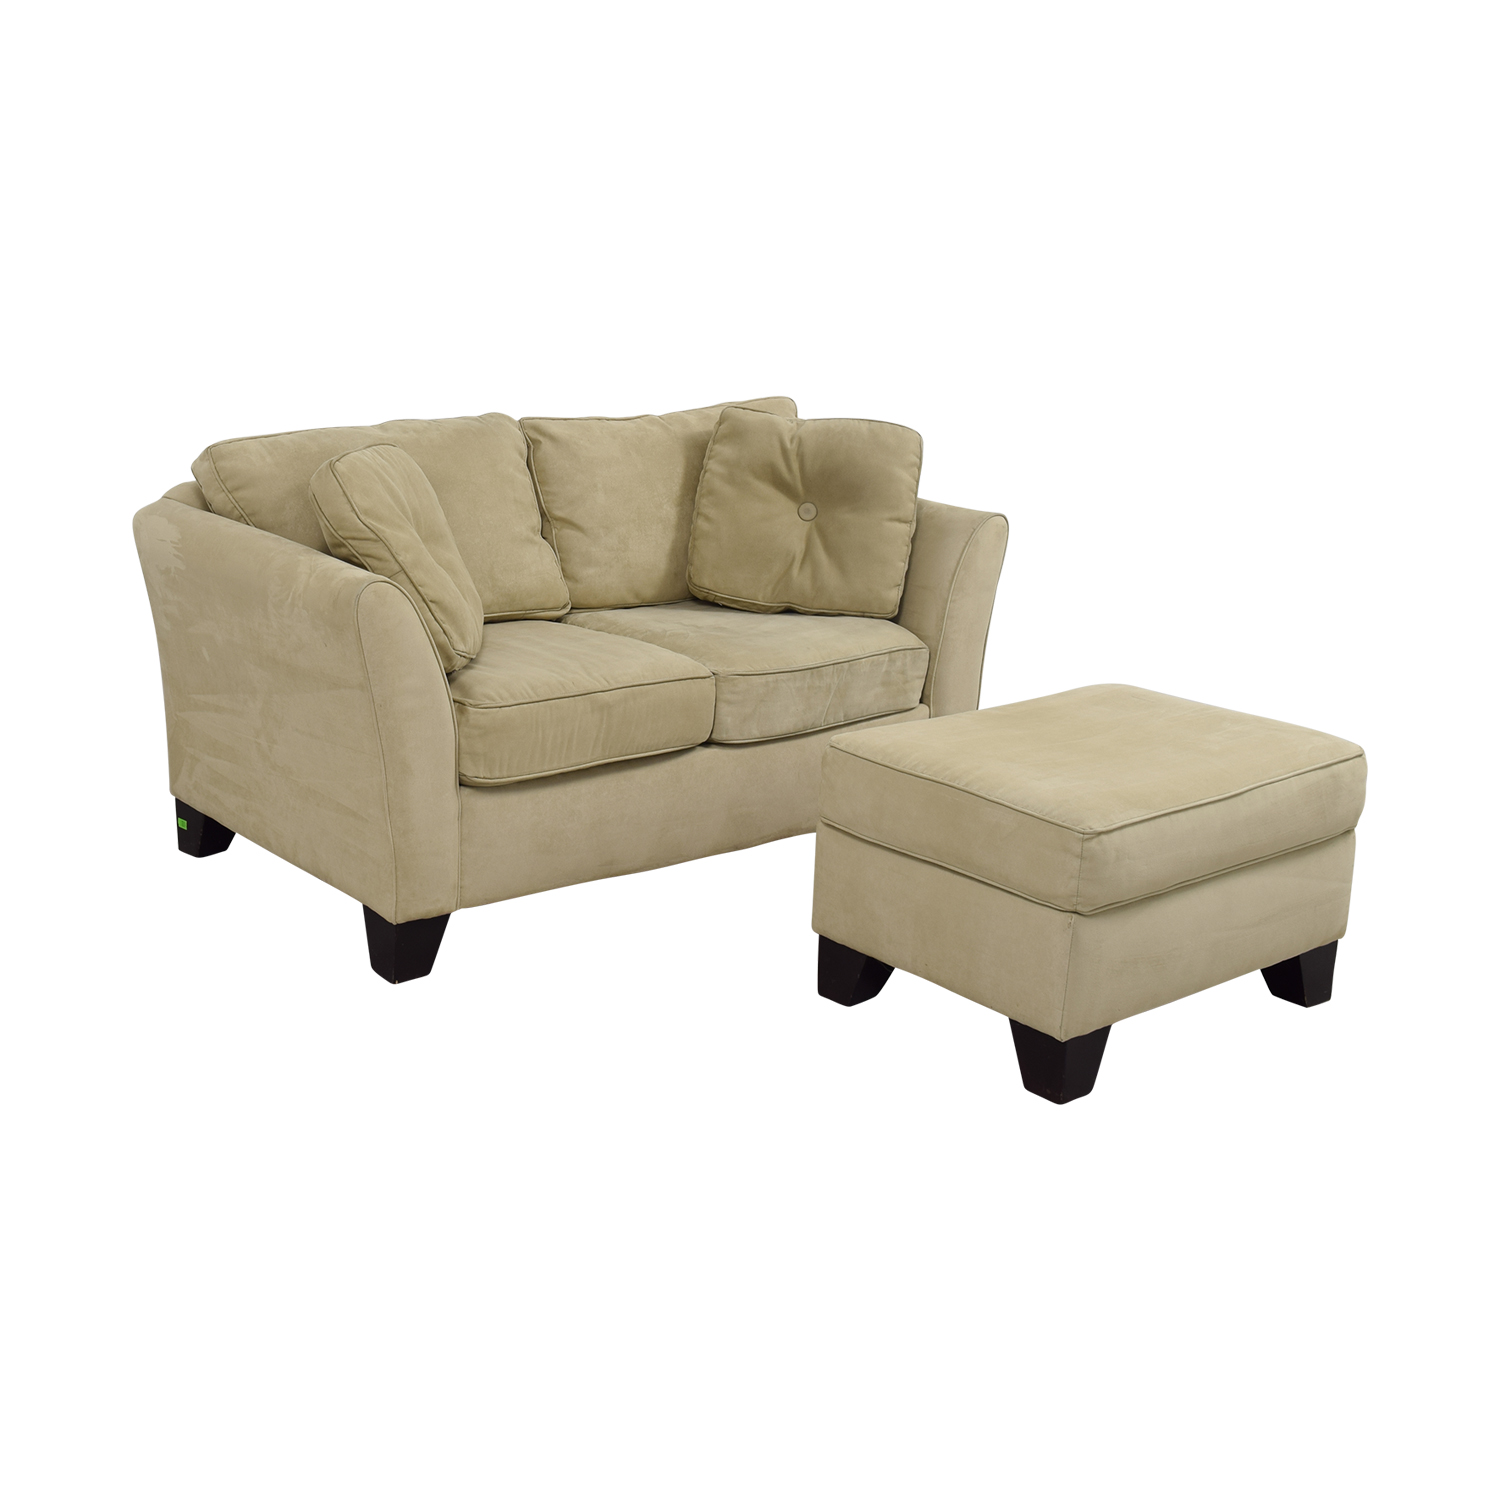 Macys Furniture Carle Place: Macy's Macy's Tan Loveseat With Ottoman / Sofas